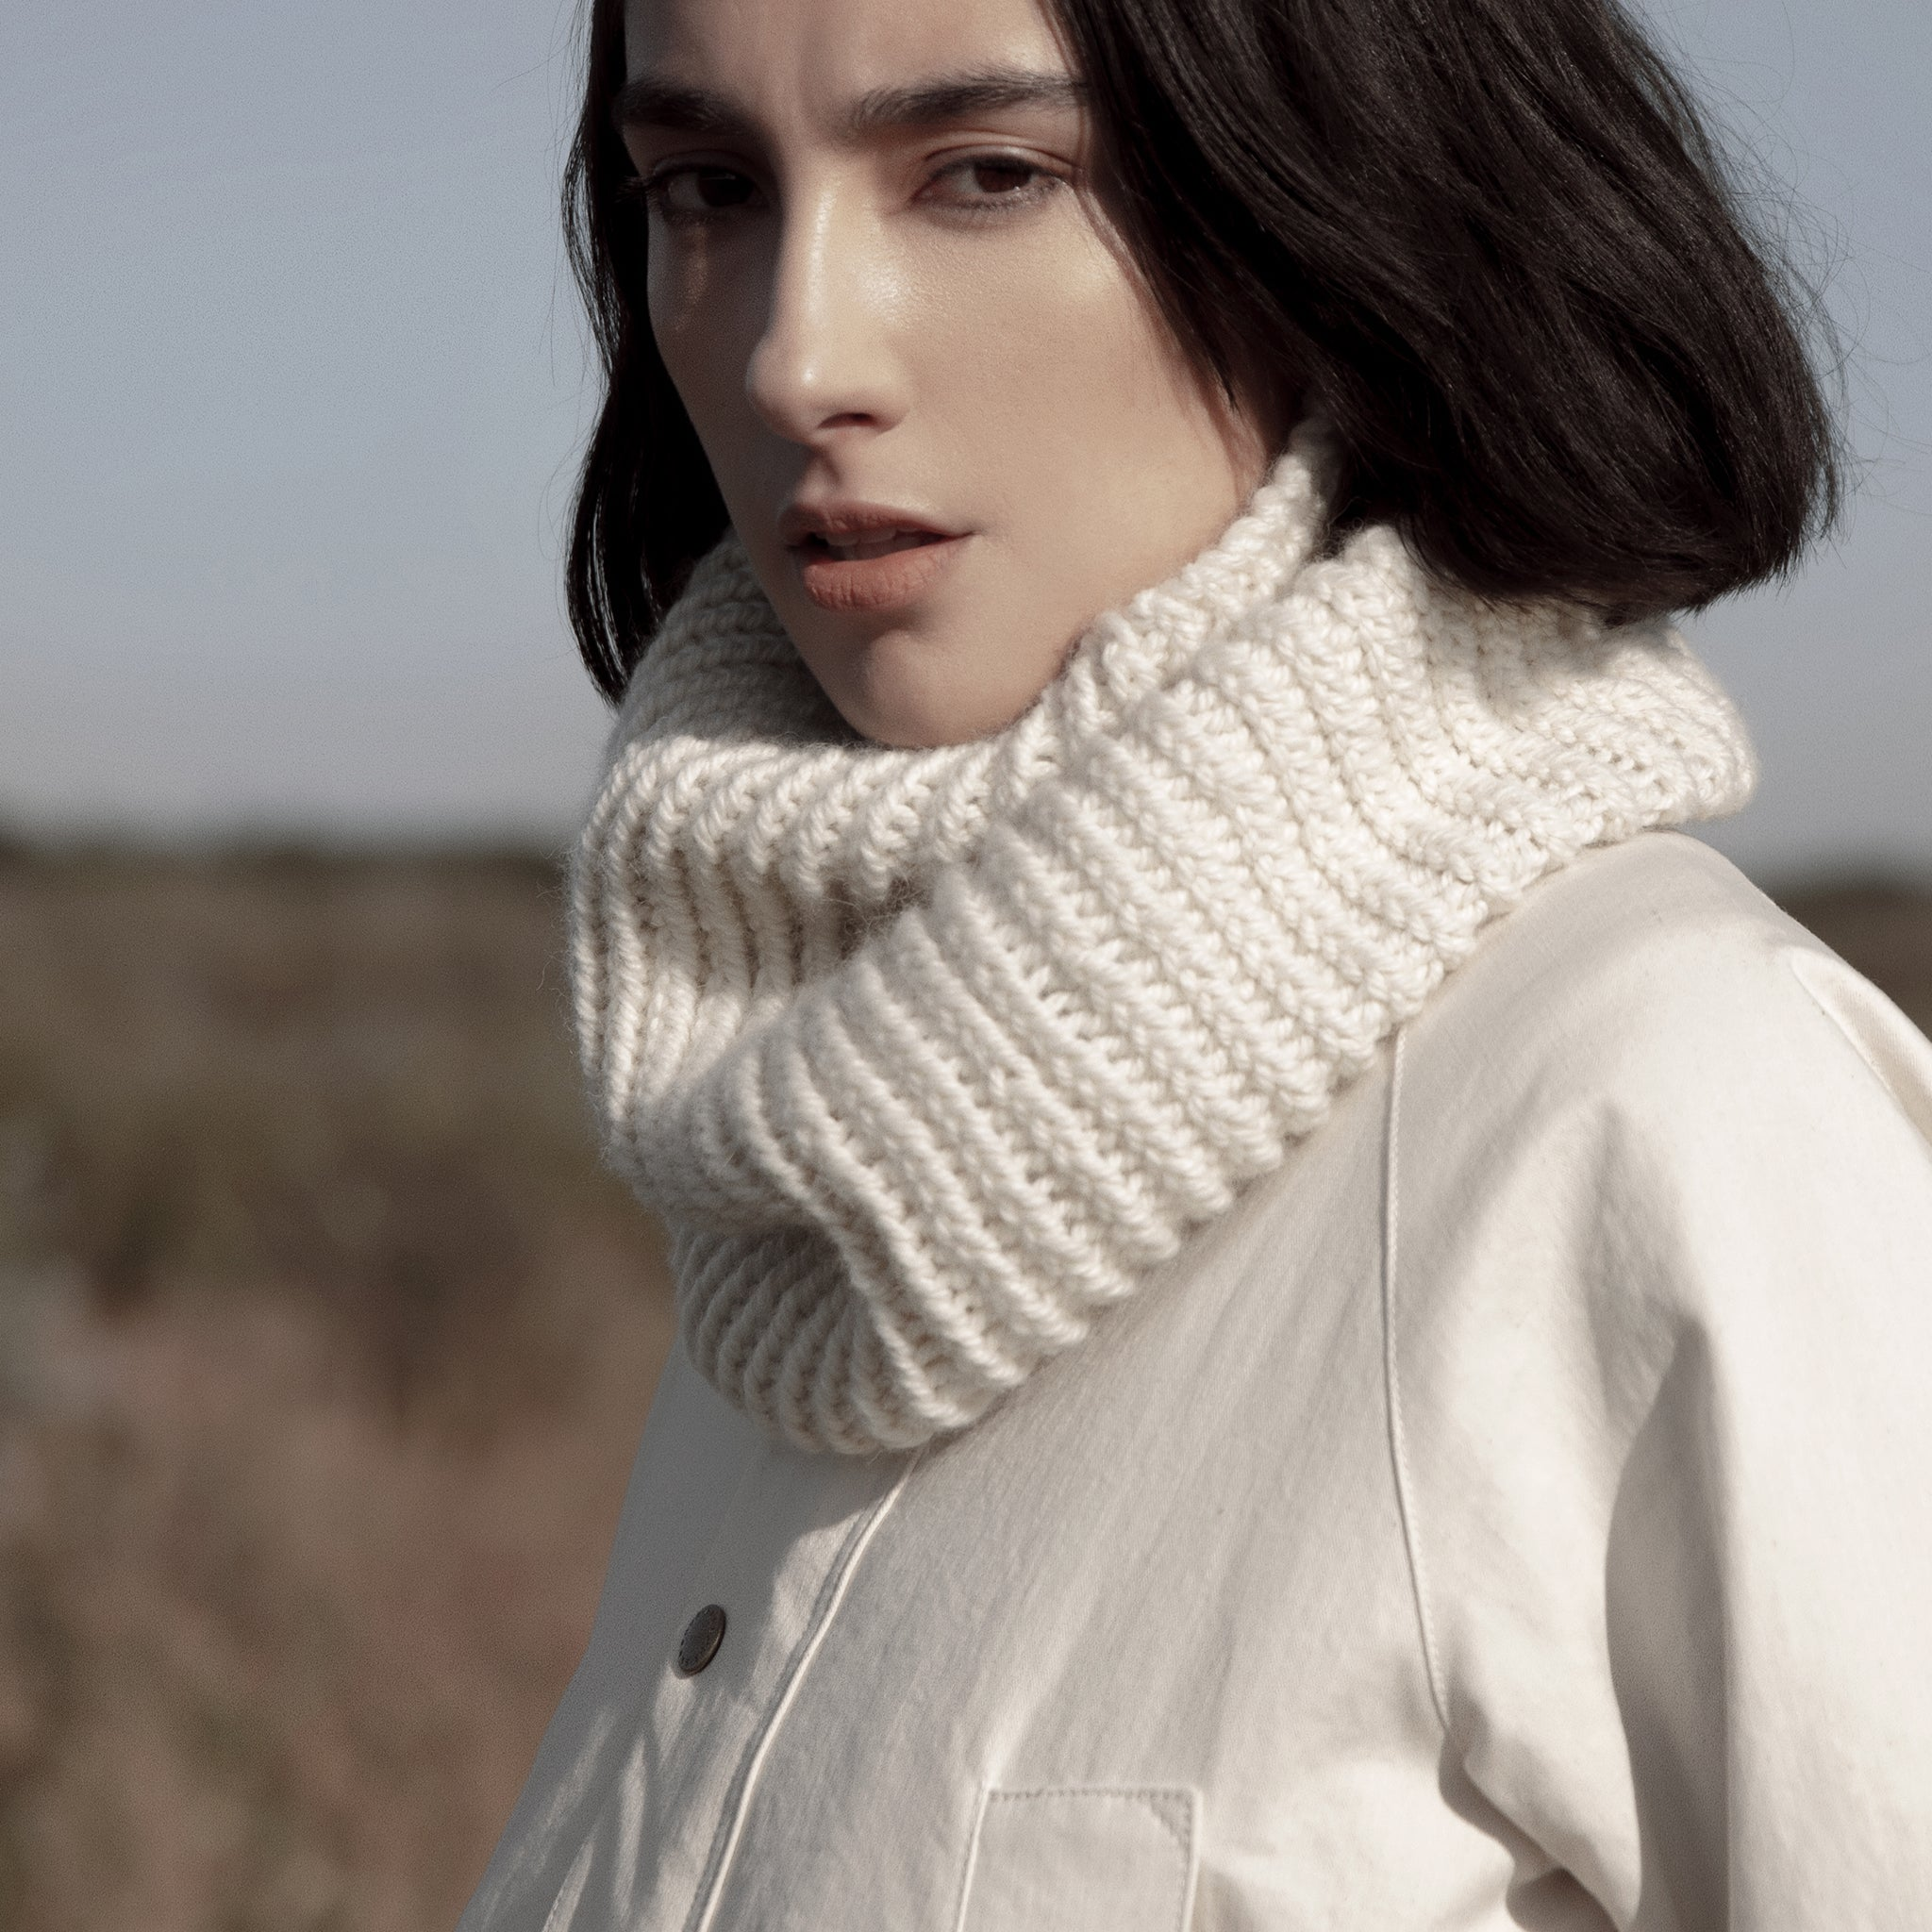 BROADFORD COWL KIT